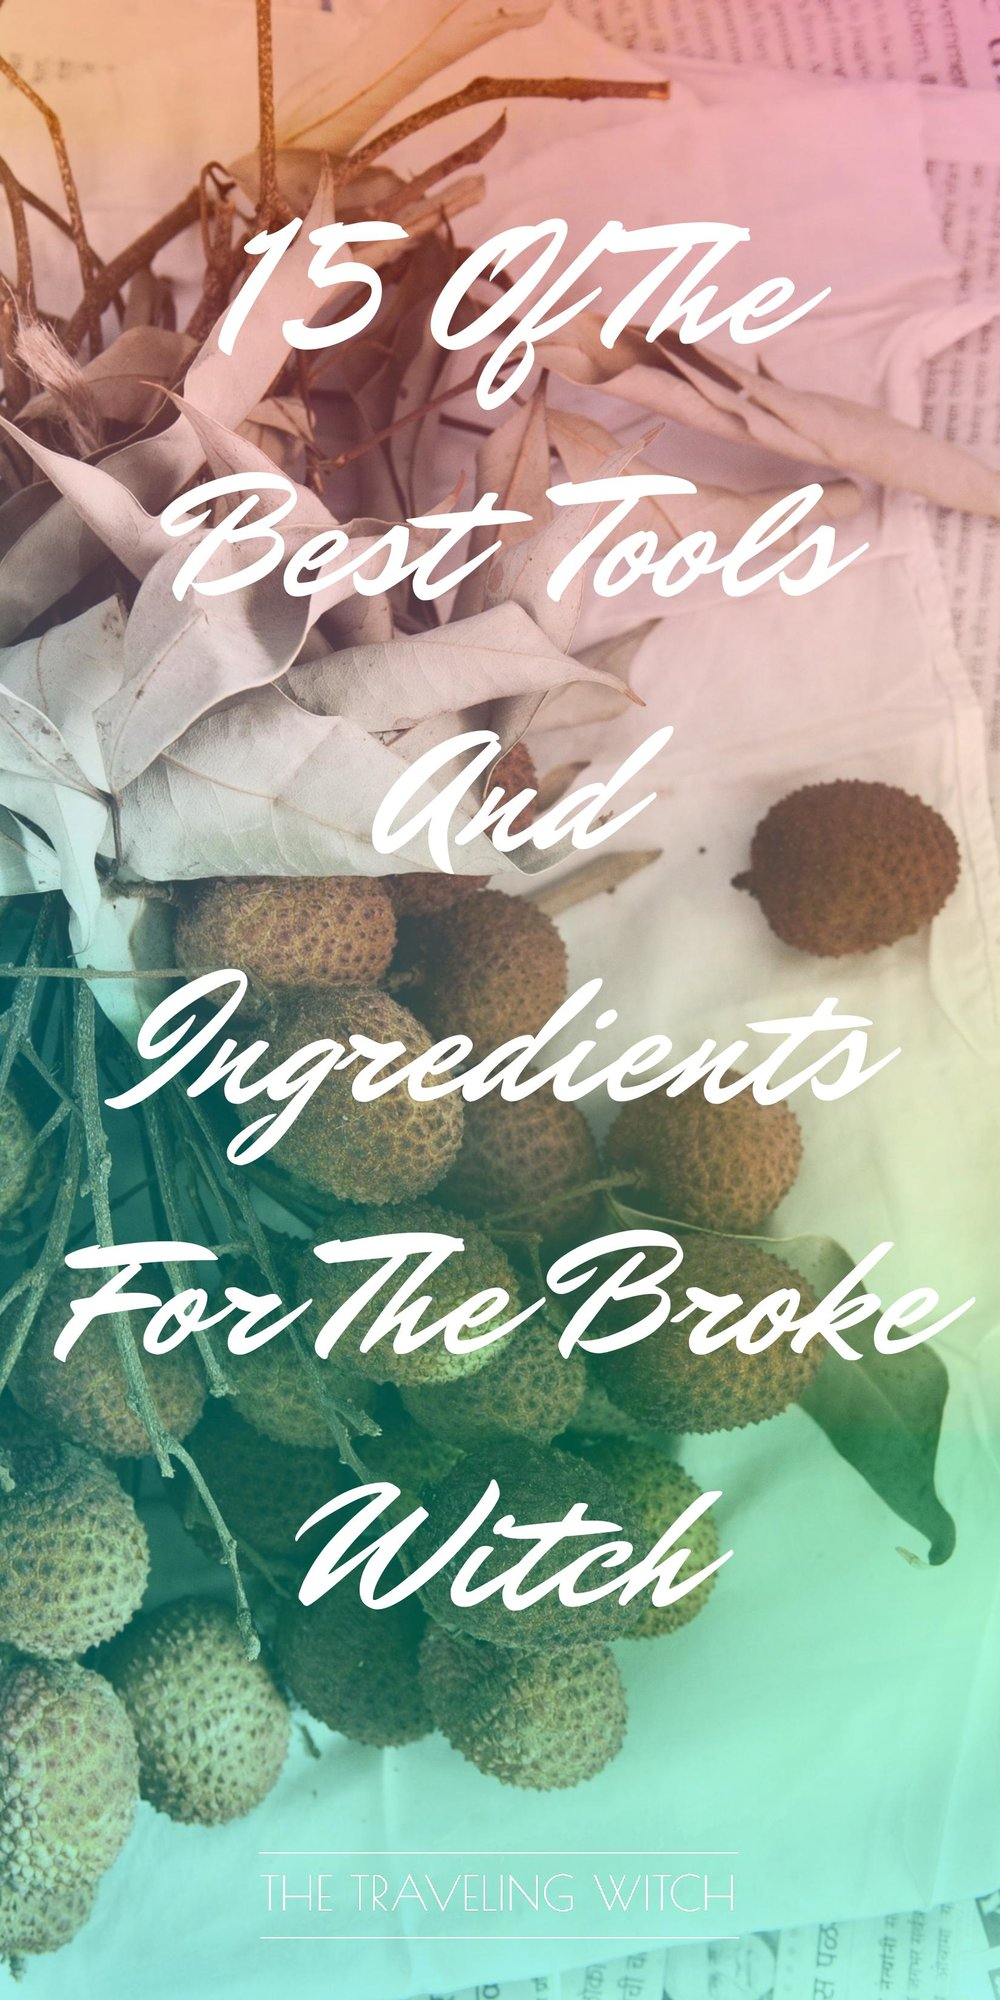 15 Of The Best Tools And Ingredients For The Broke Witch // Witchcraft // Magick // The Traveling Witch